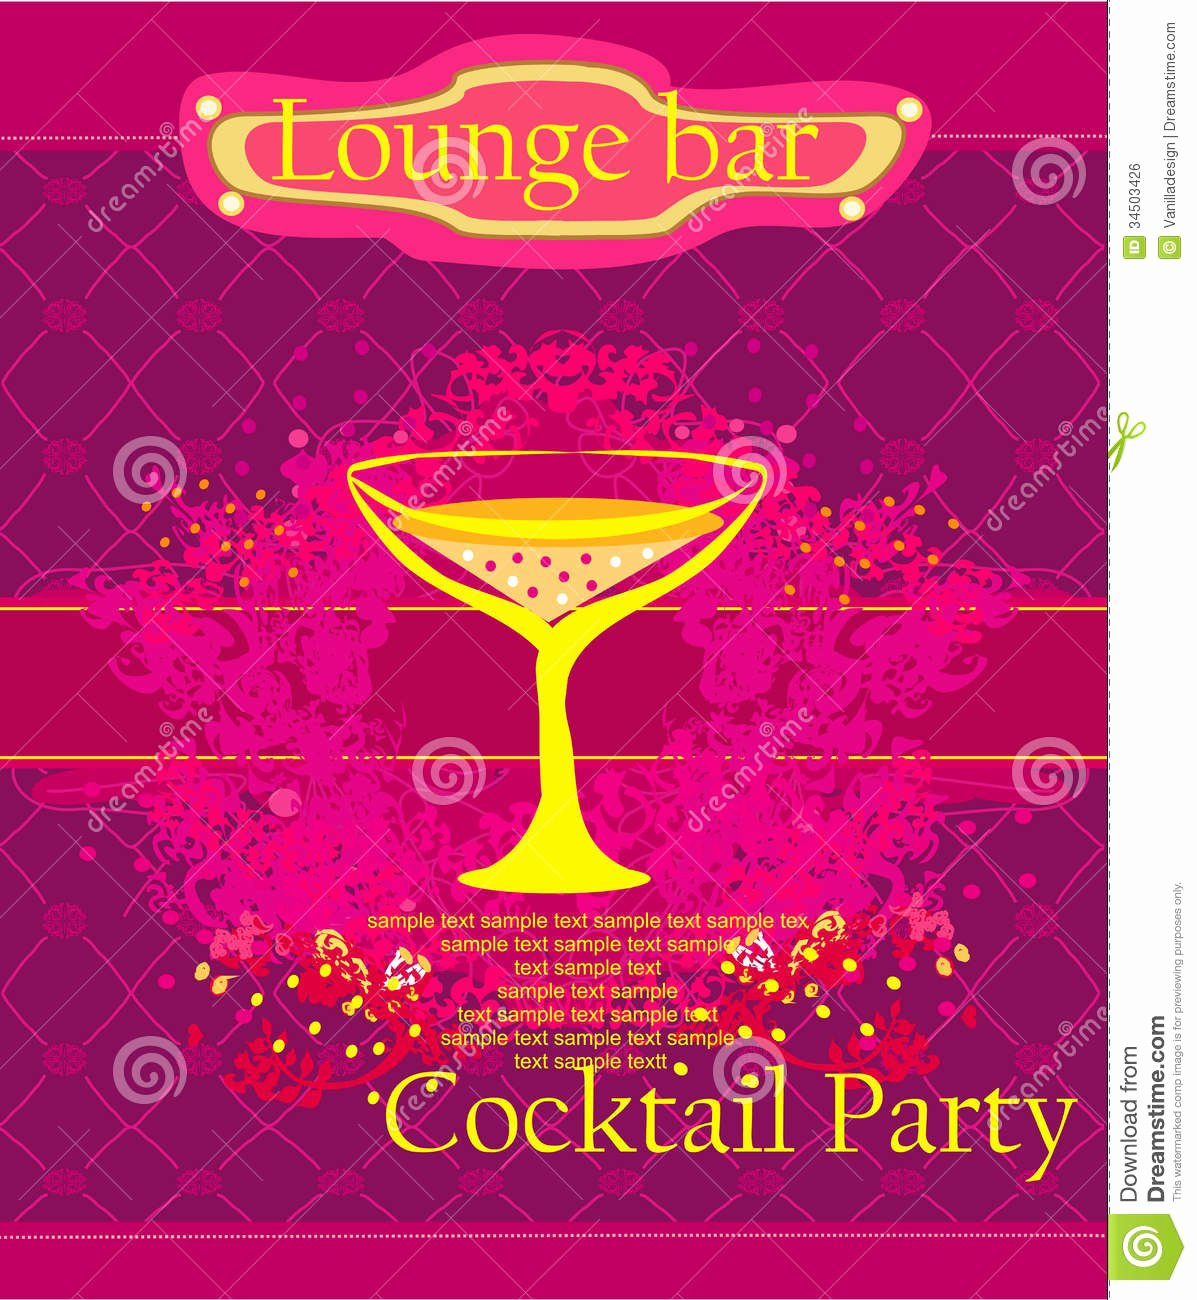 Cocktail Party Invitation Template New Cocktail Party Invitation Card Royalty Free Stock Image